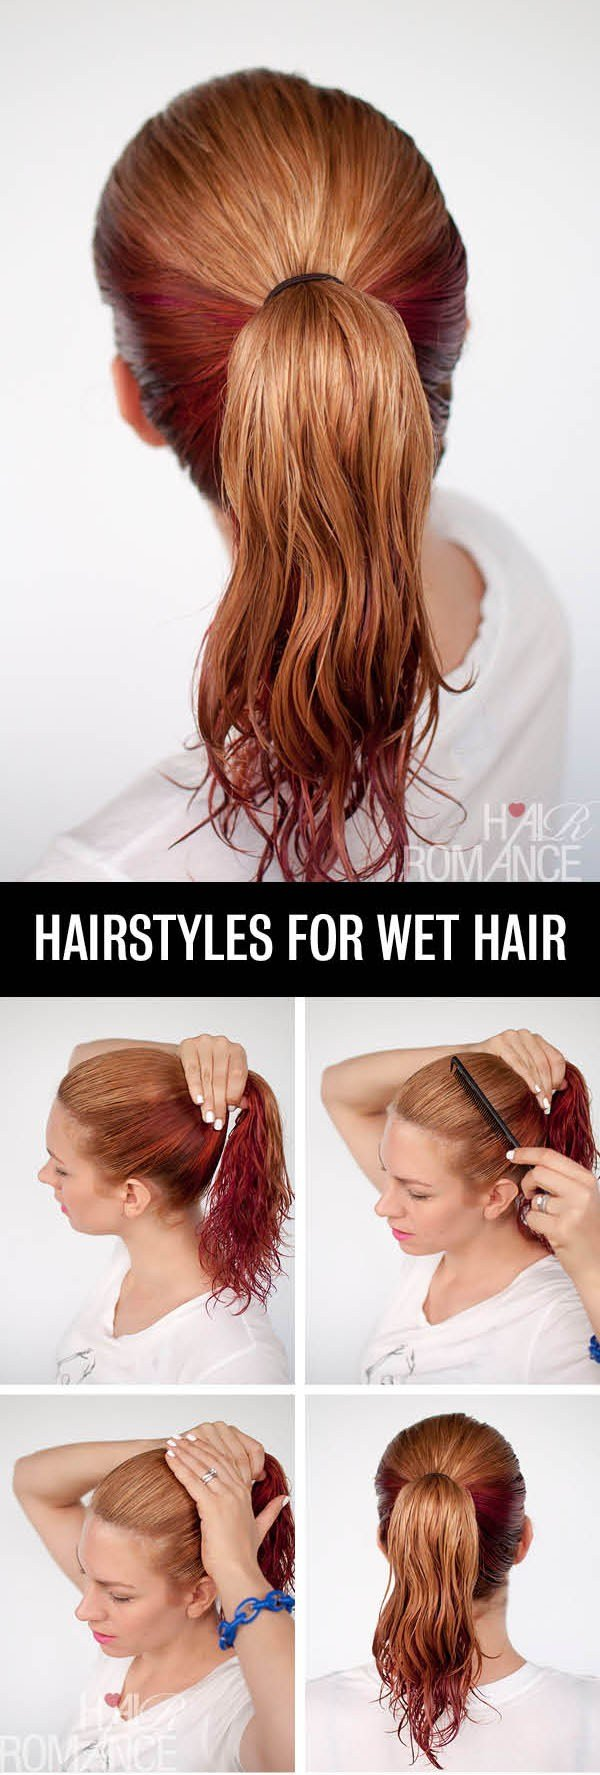 The Best ピンク·オレンジジュース Get Ready Fast With 7 Easy Hairstyle Tutorials For Wet Hair Pictures